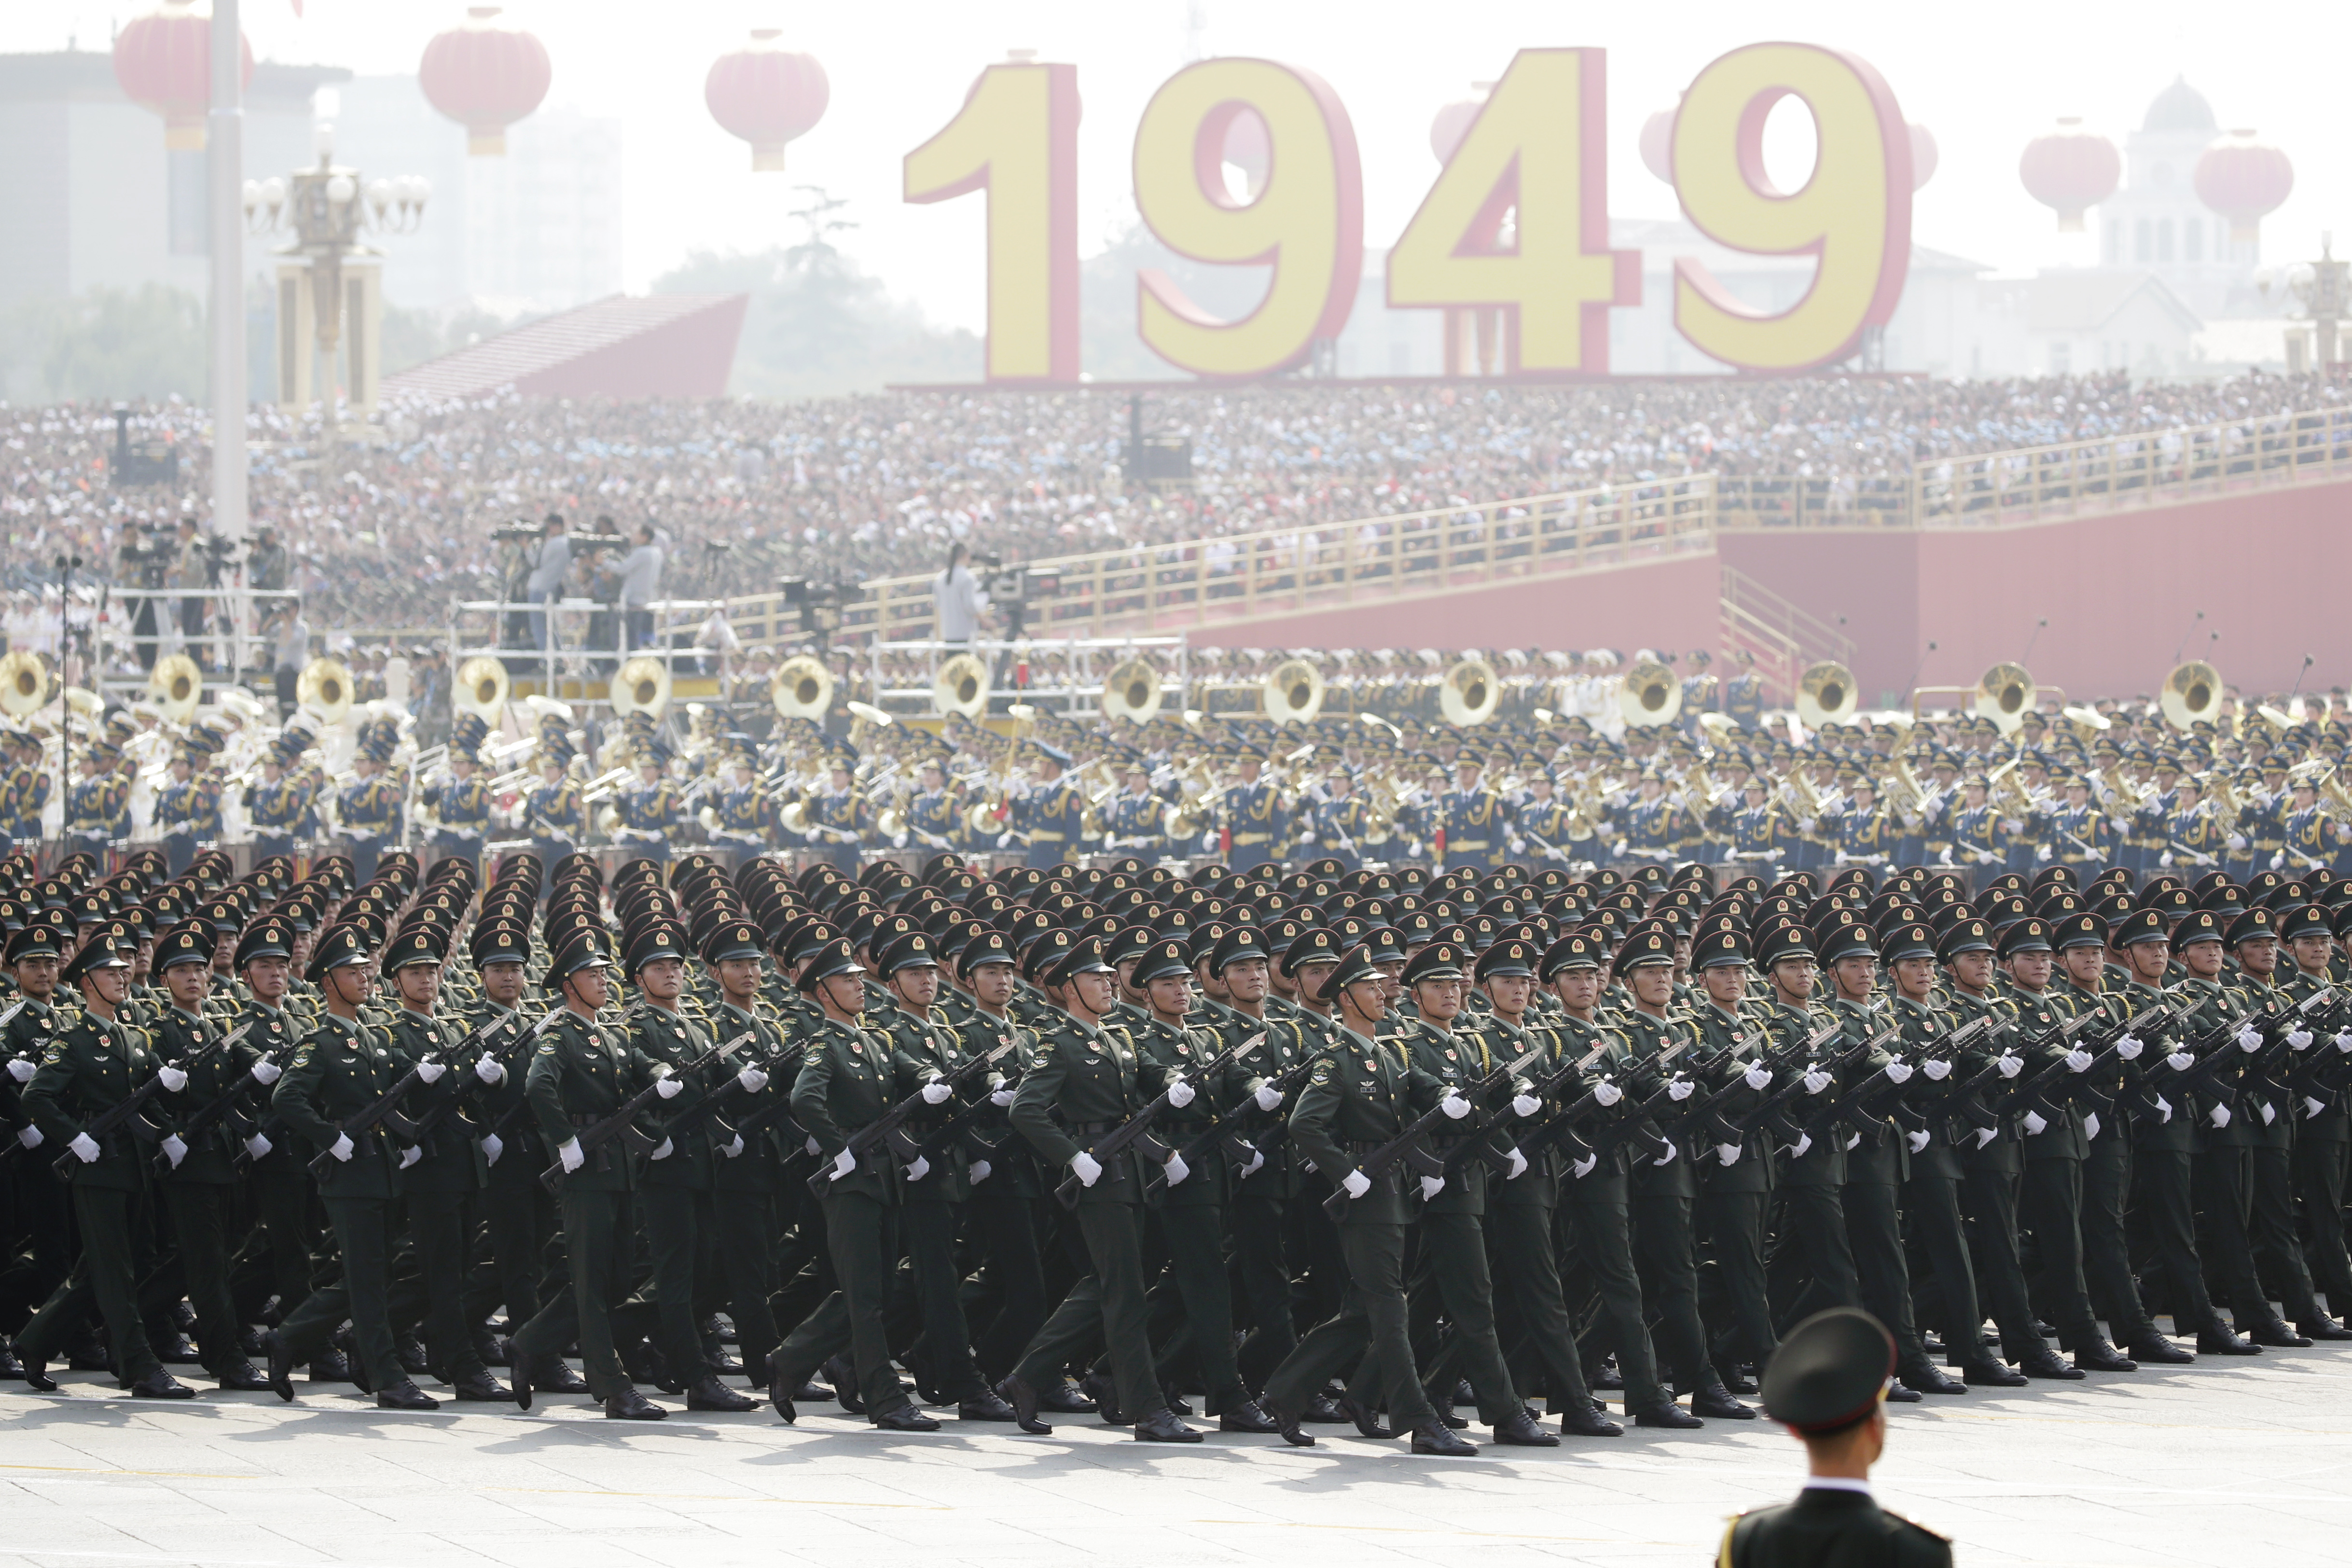 People's Liberation Army soldiers march in the military parade marking the 70th founding anniversary of the People's Republic of China on October 1, 2019.